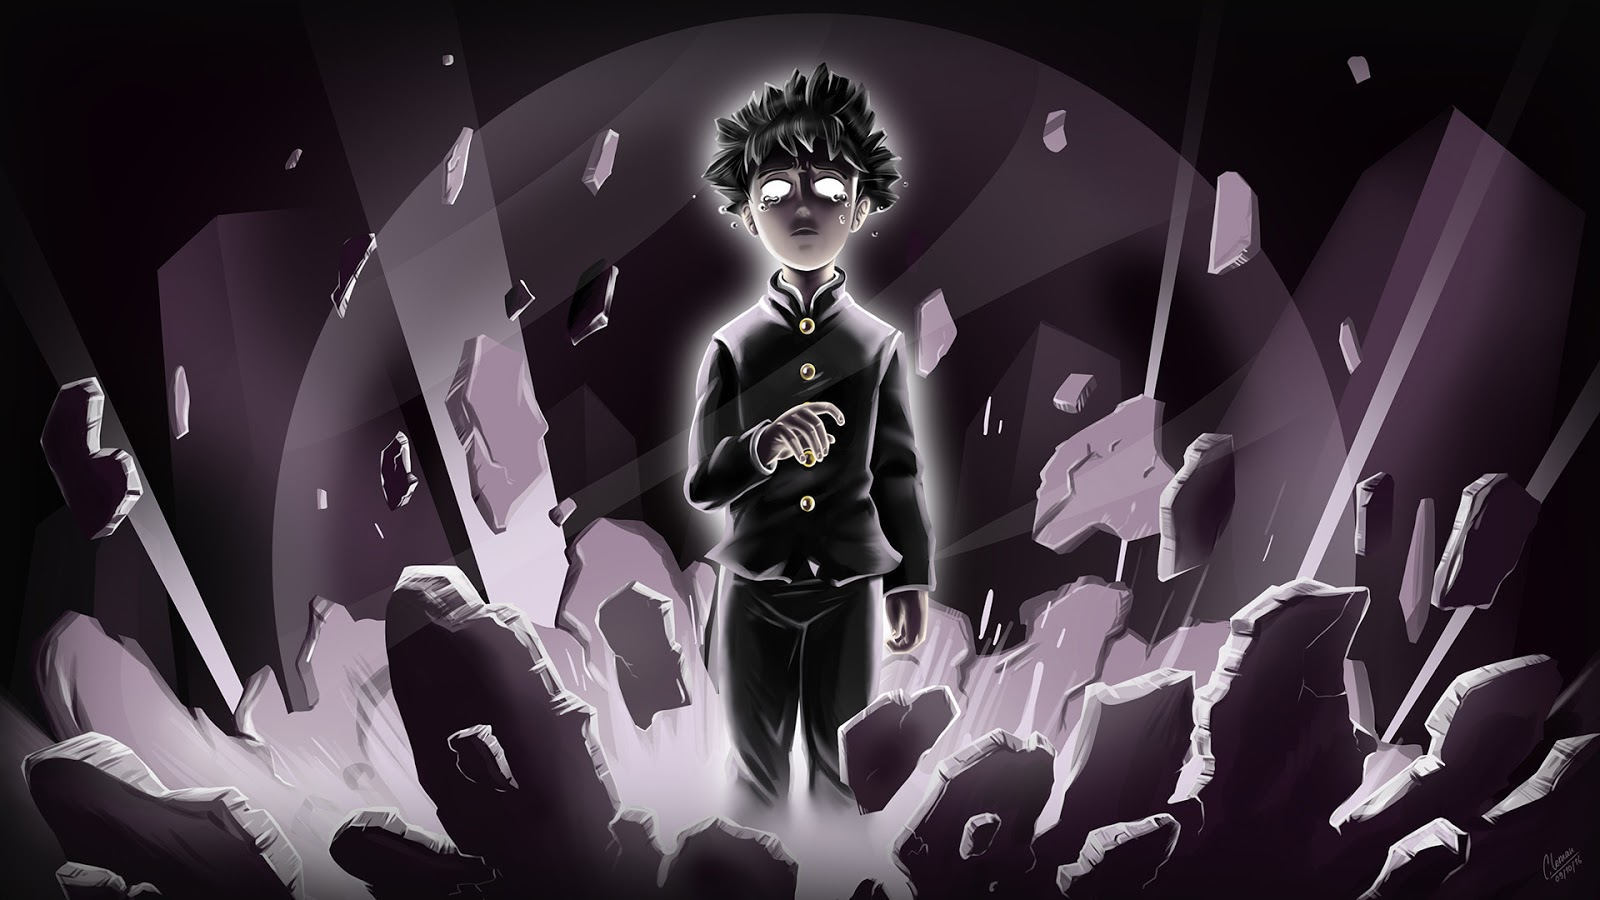 Review anime mob psycho 100